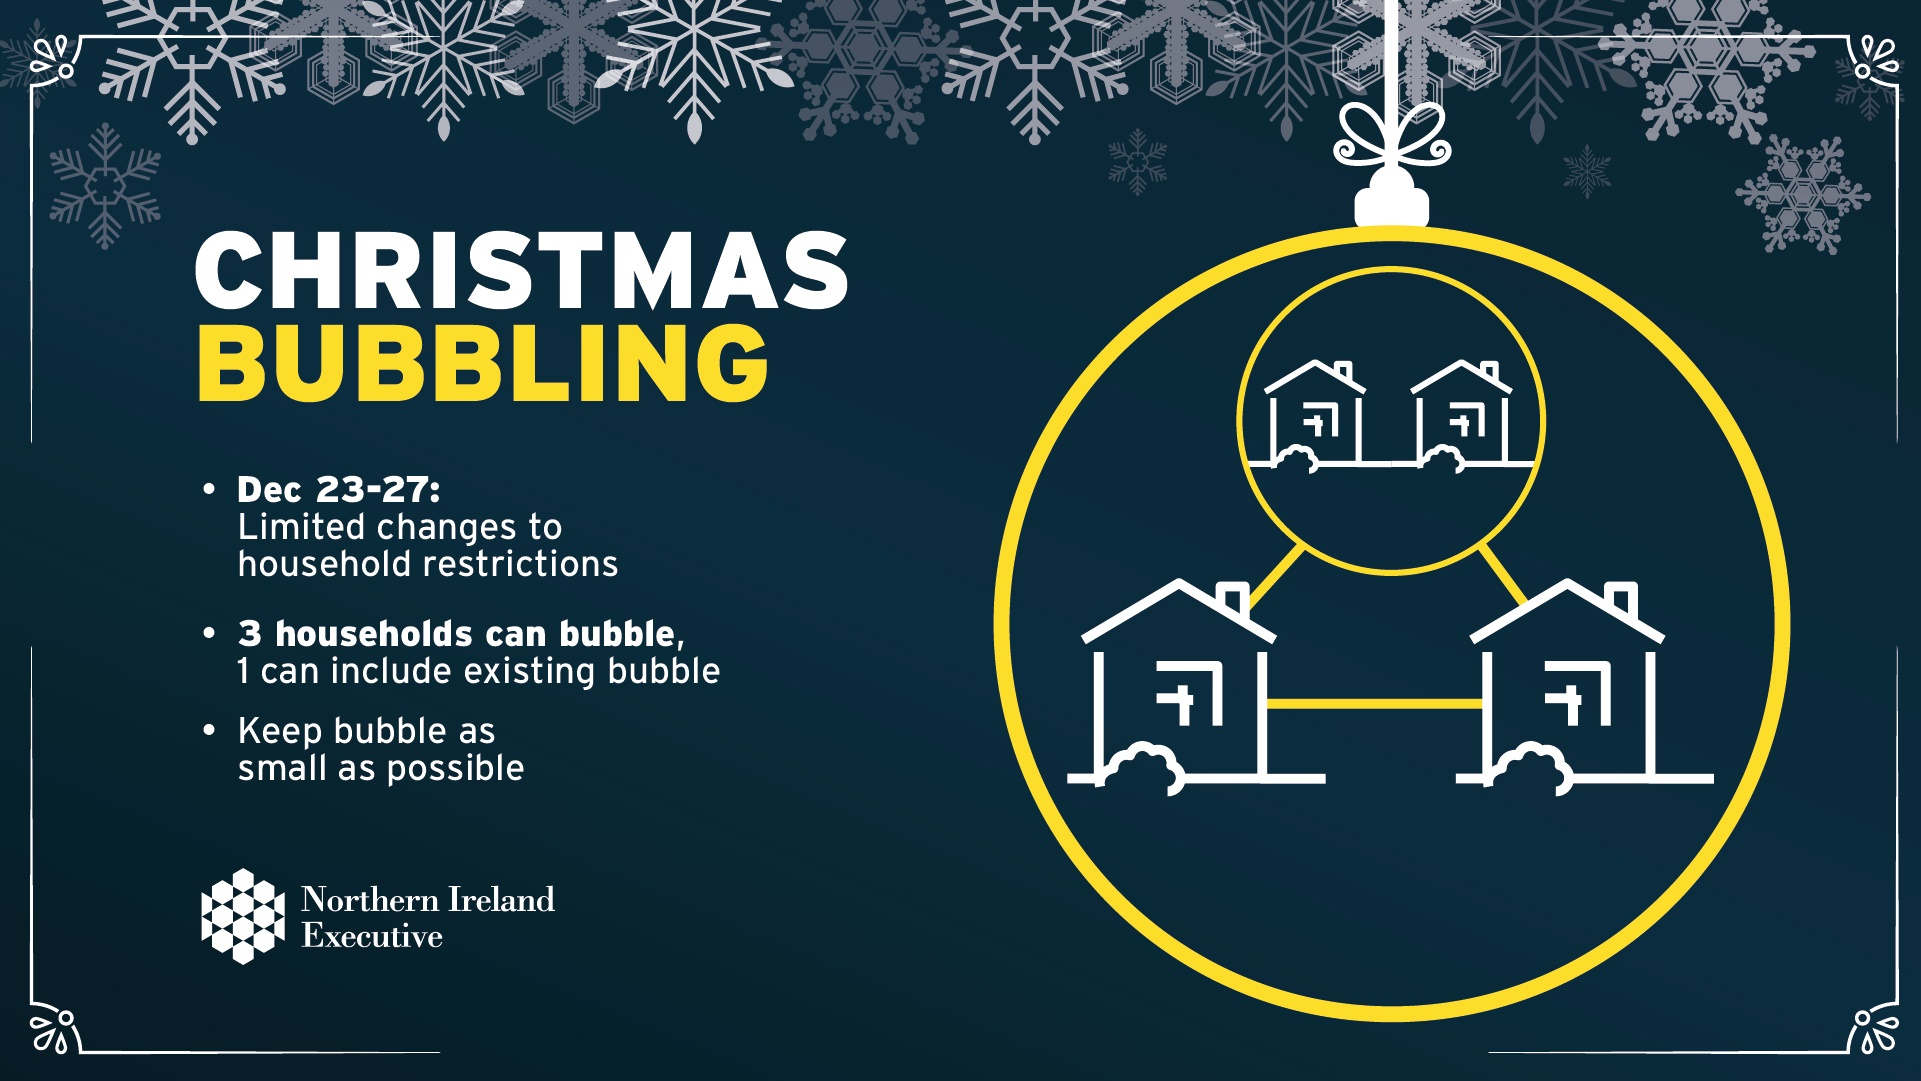 NI Executive Christmas bubbling graphic - Newry CoVID Coronavirus news